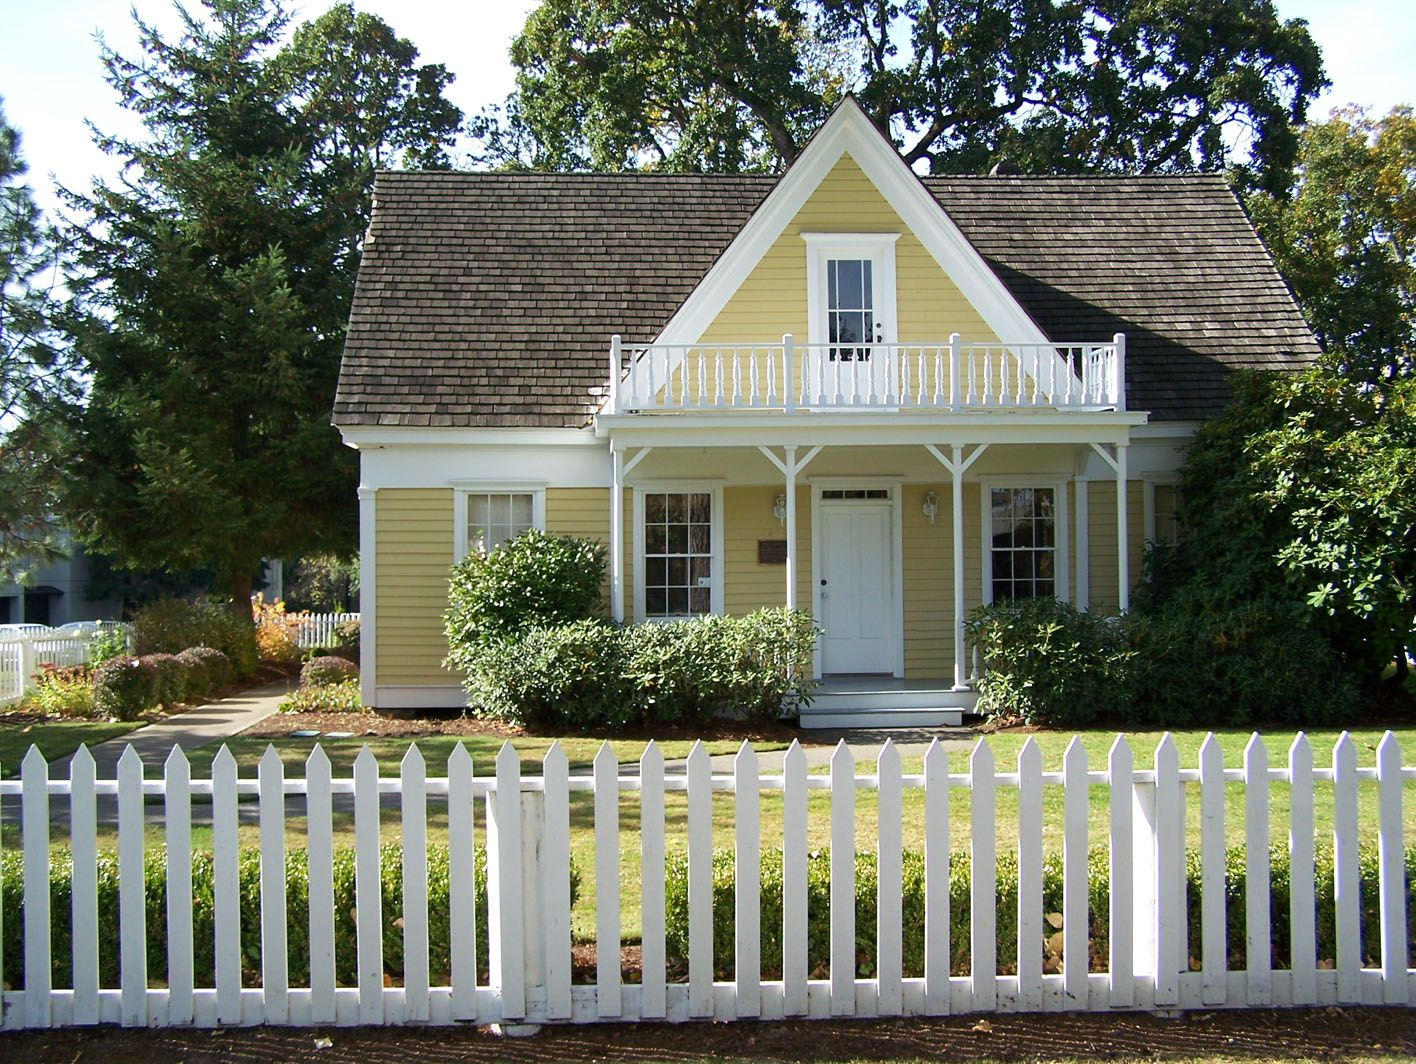 Living The American Dream With A White Picket Fence House